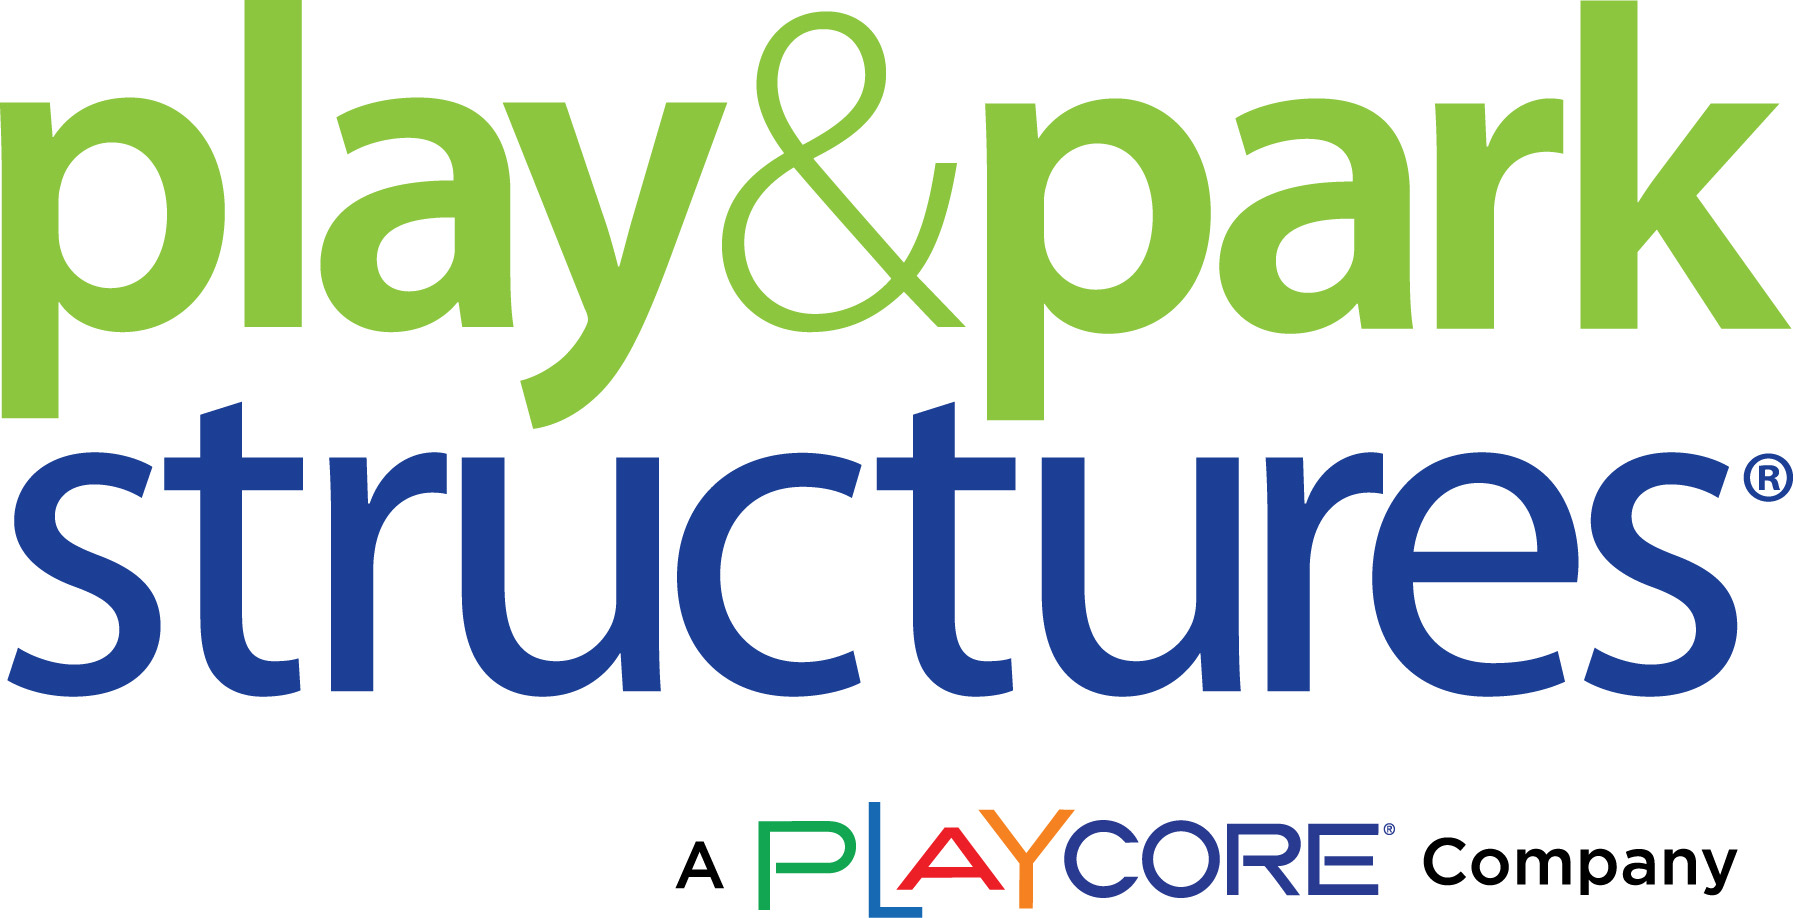 Play & Park Structures, A PlayCore Company